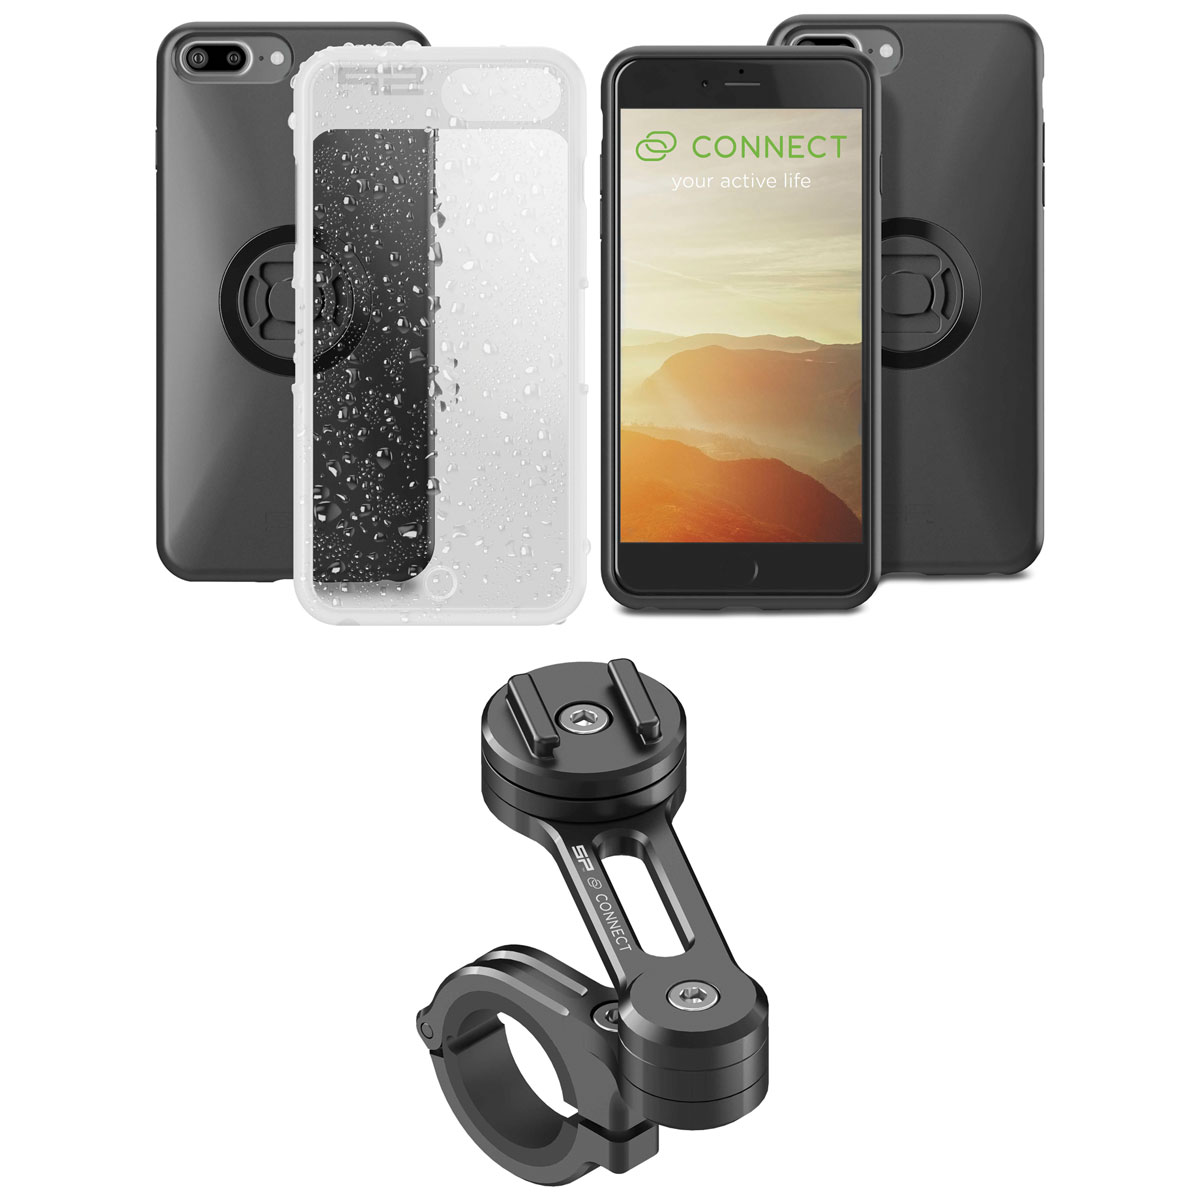 SP Connect Moto Bundle for iPhone 6/6S/7/8 Plus